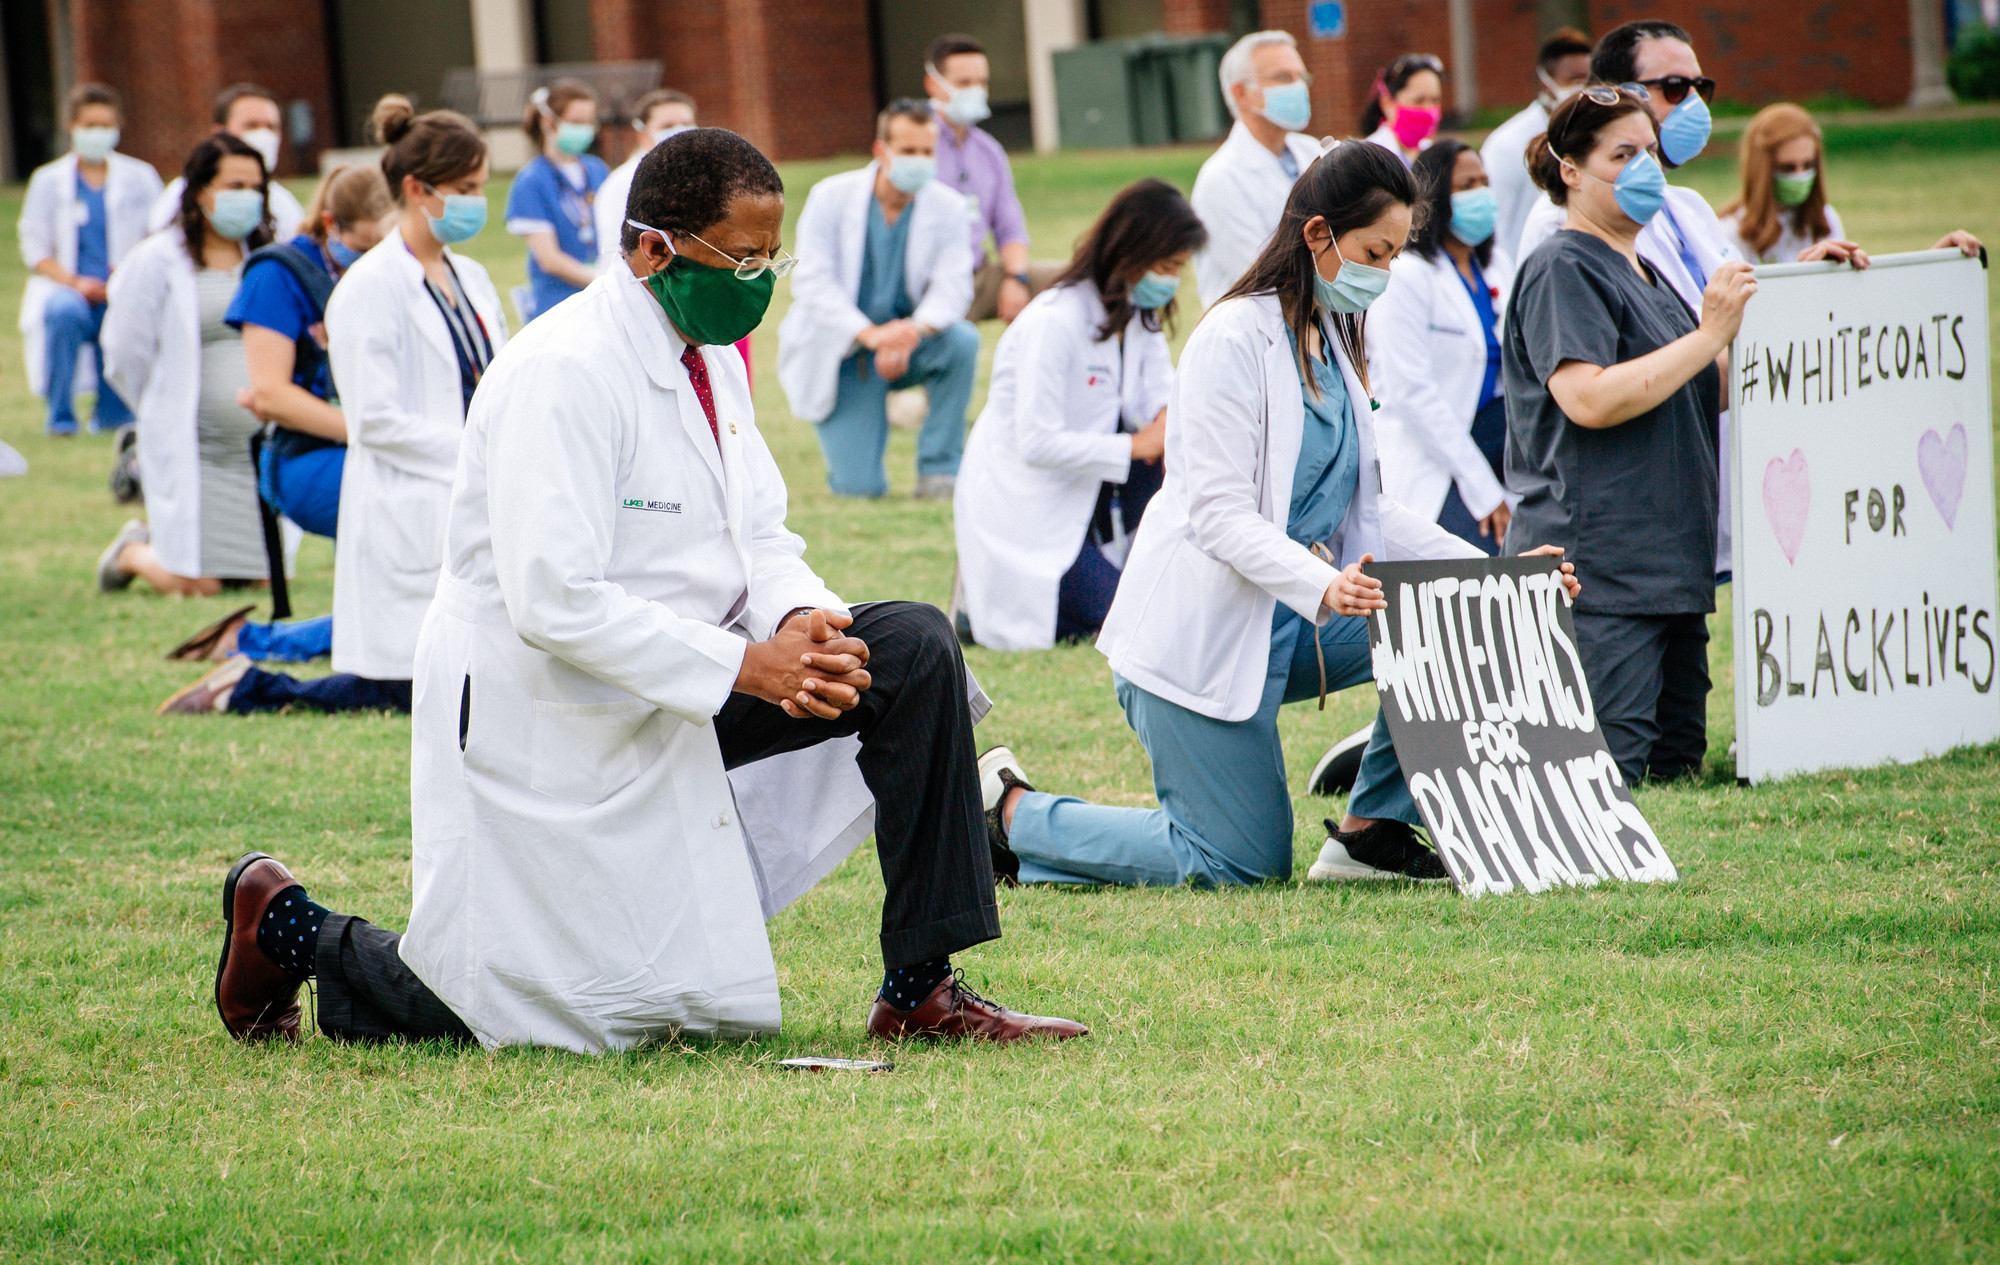 Whitecoats for Black lives